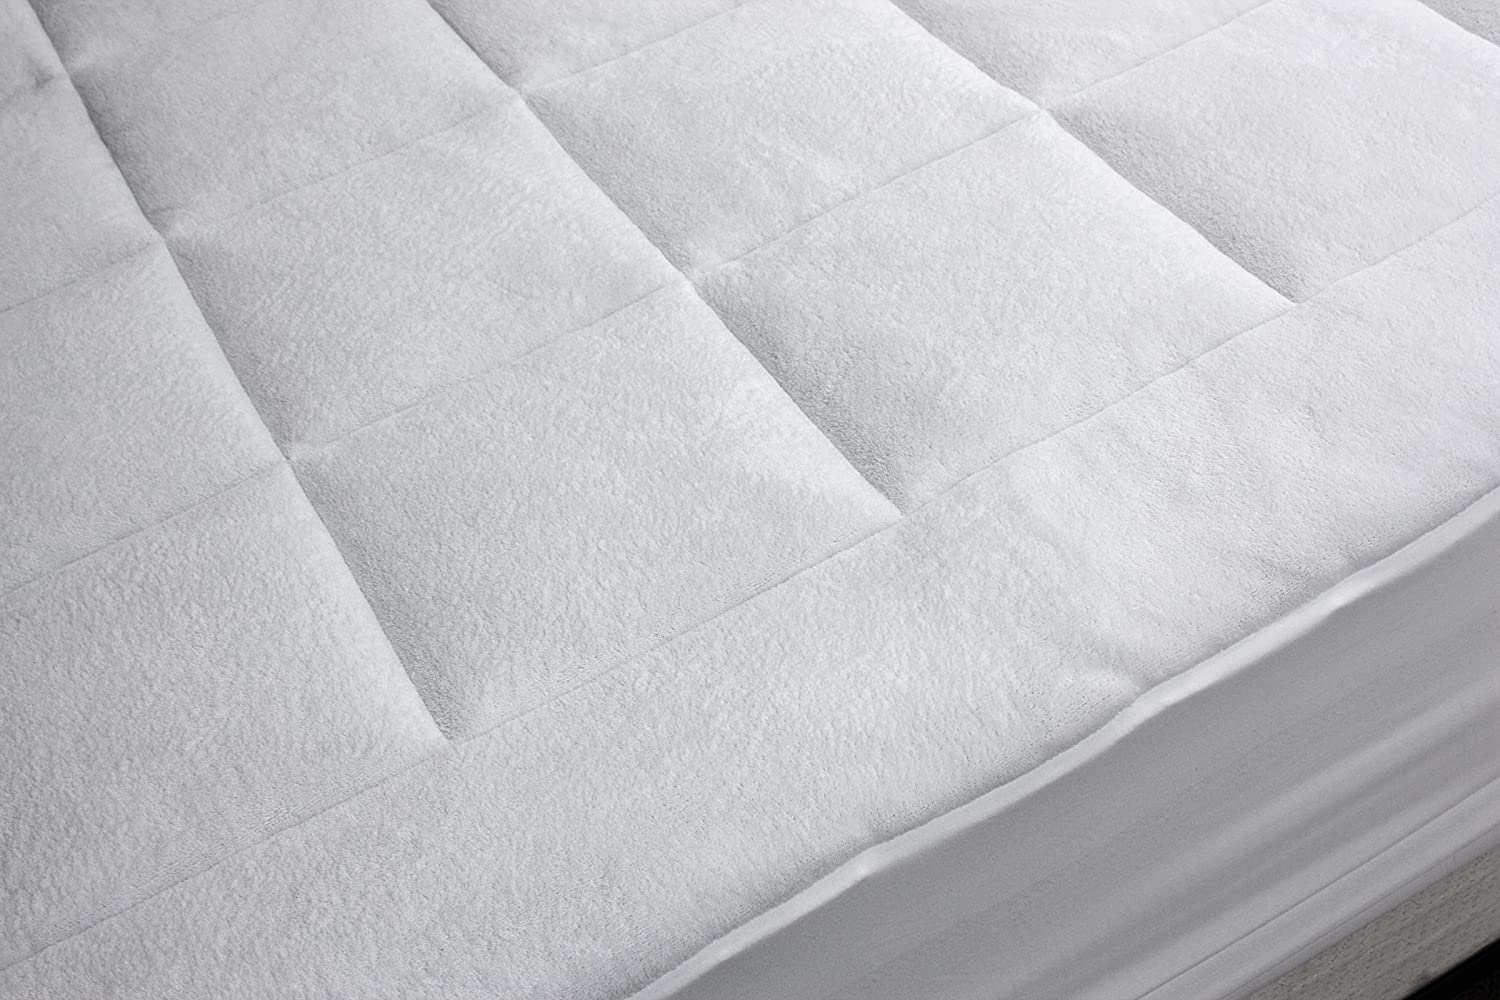 rio home fashions overfilled super soft microplush twin xl mattress pad new f ebay. Black Bedroom Furniture Sets. Home Design Ideas